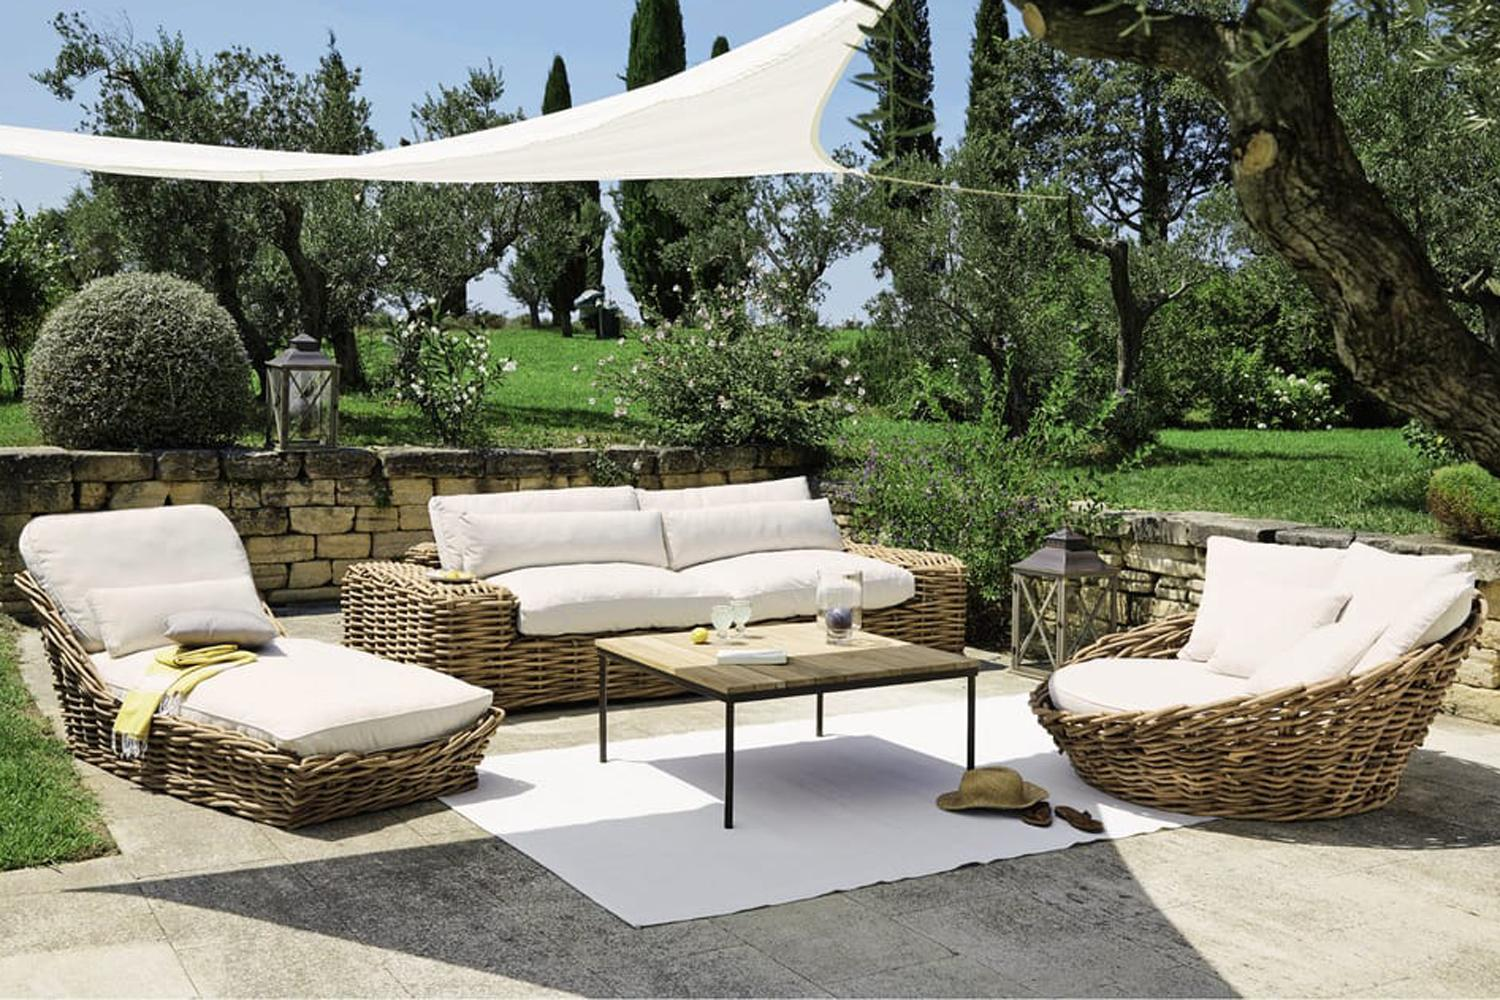 Outdoor Furniture Ringwood Best Garden Furniture Sales Rattan Tables And Chairs And The Best